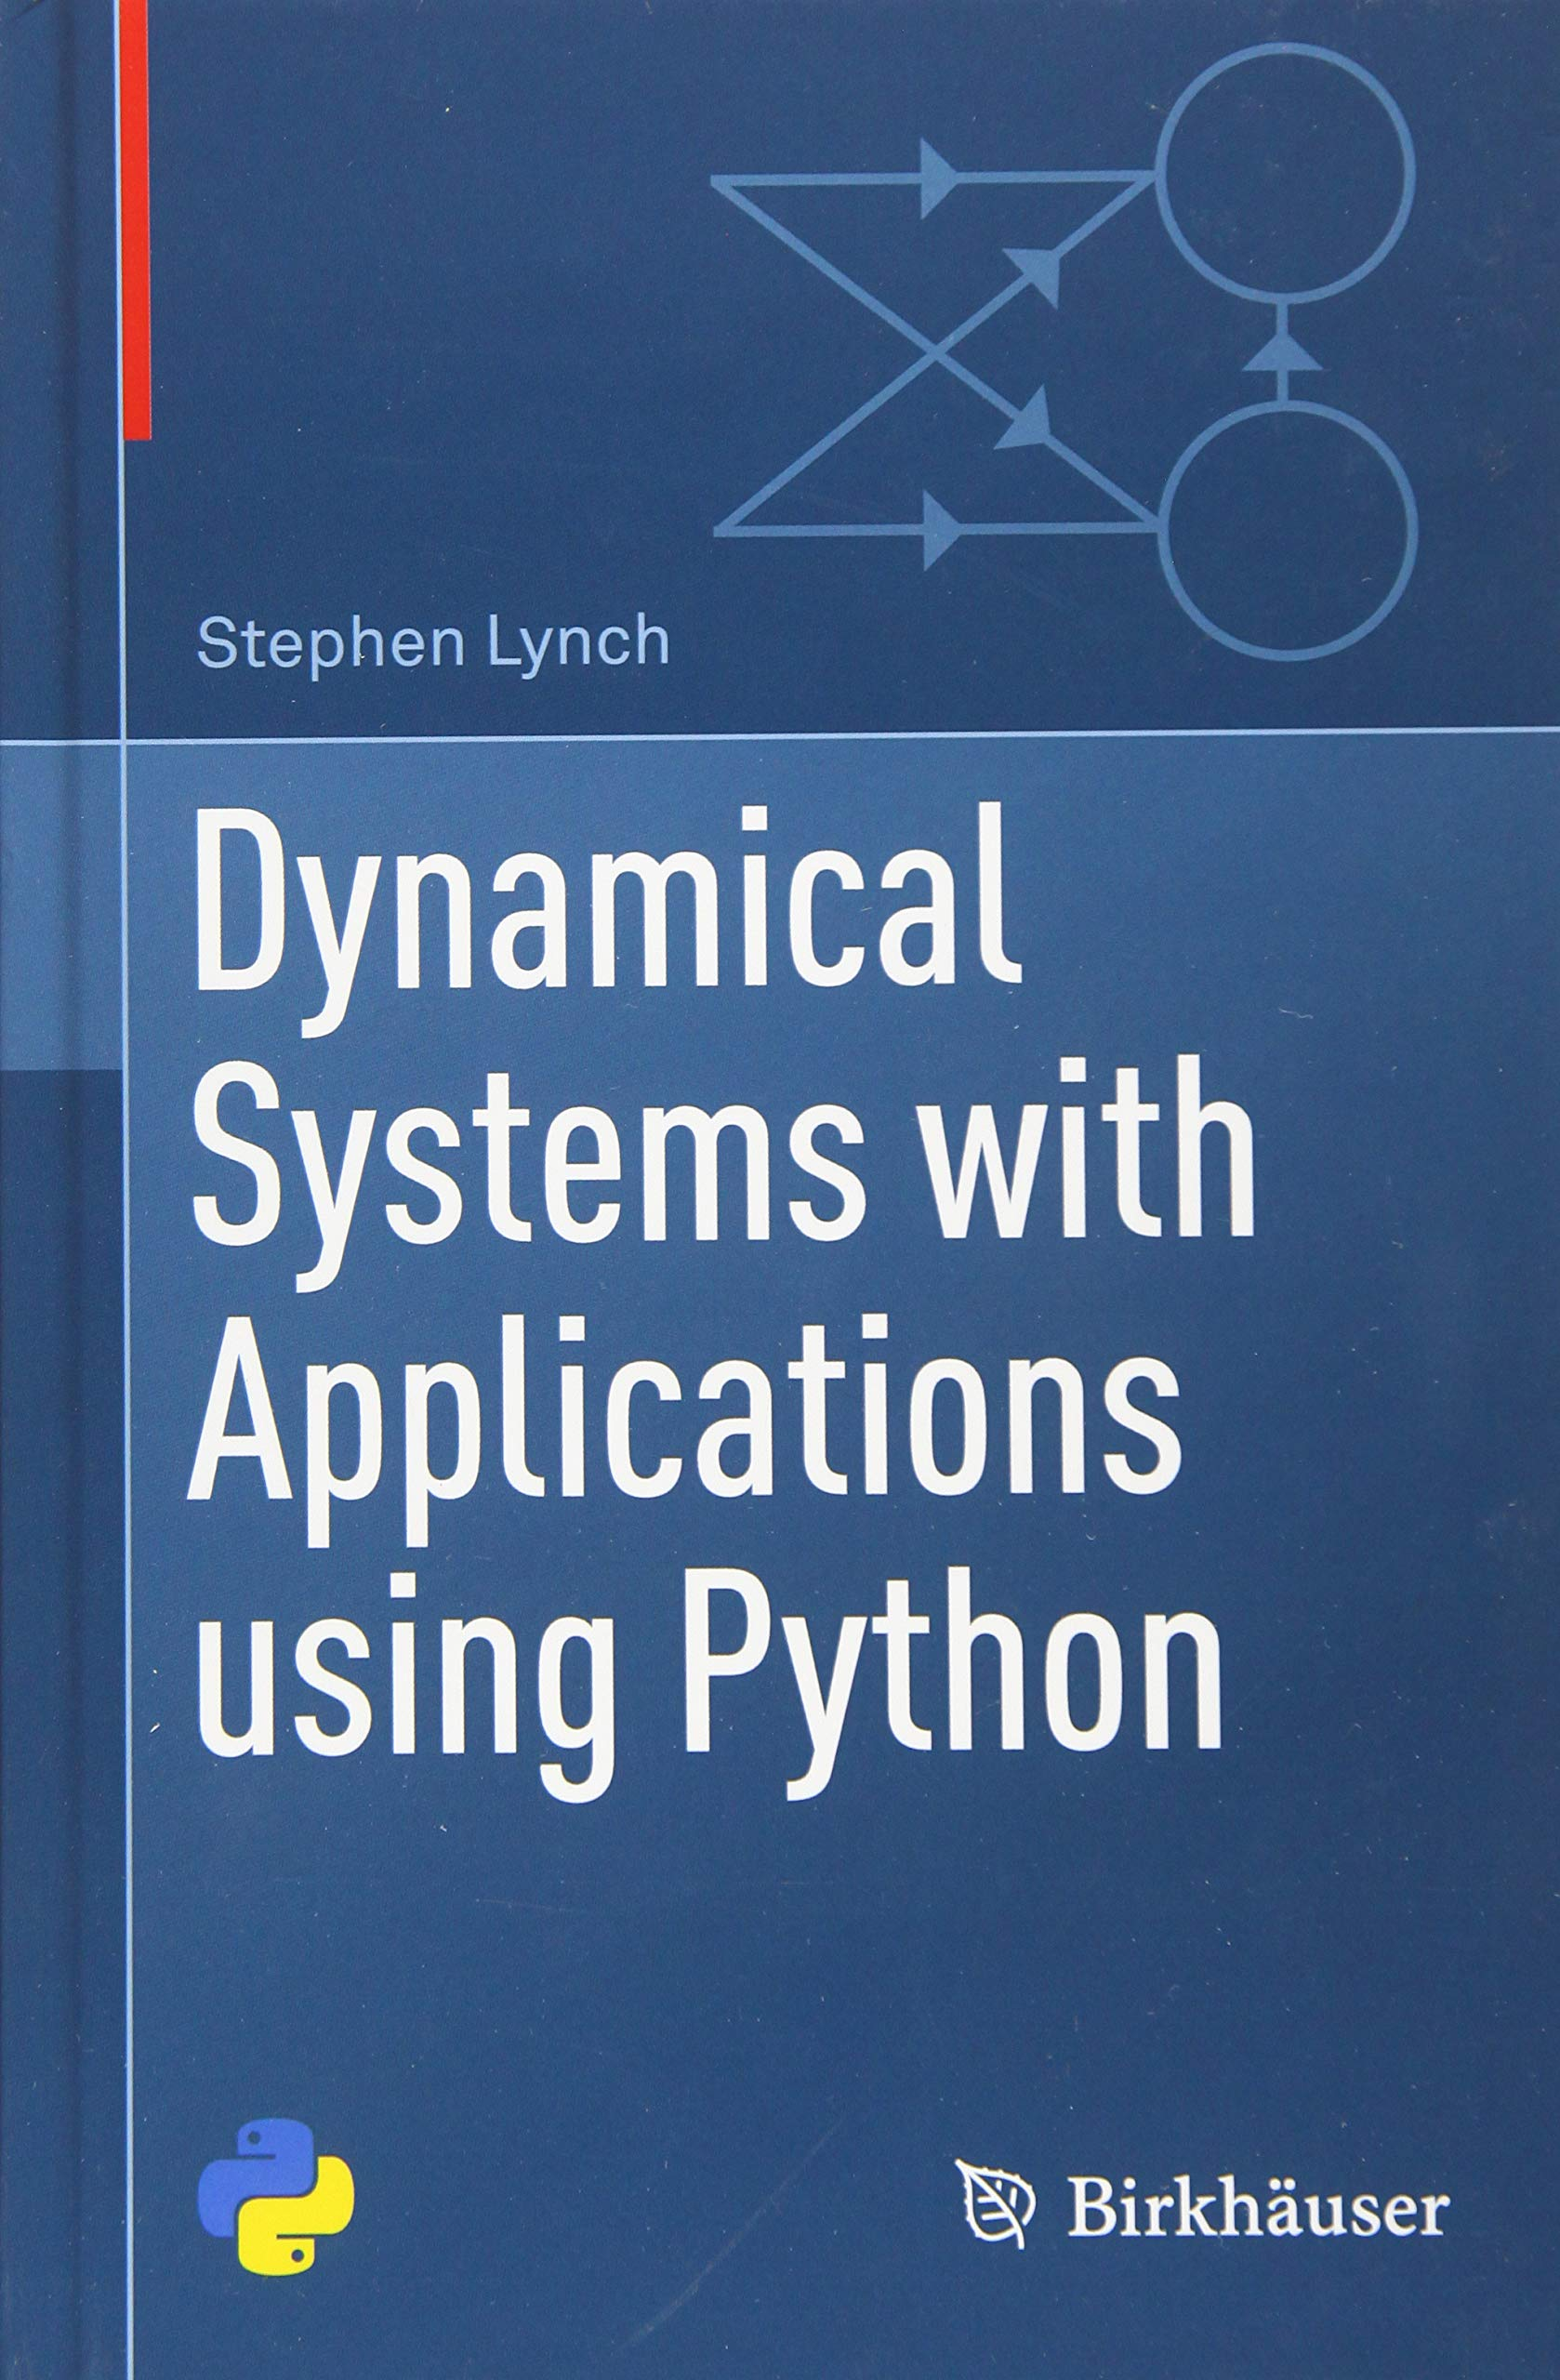 Dynamical Systems with Applications using Python: Amazon co uk